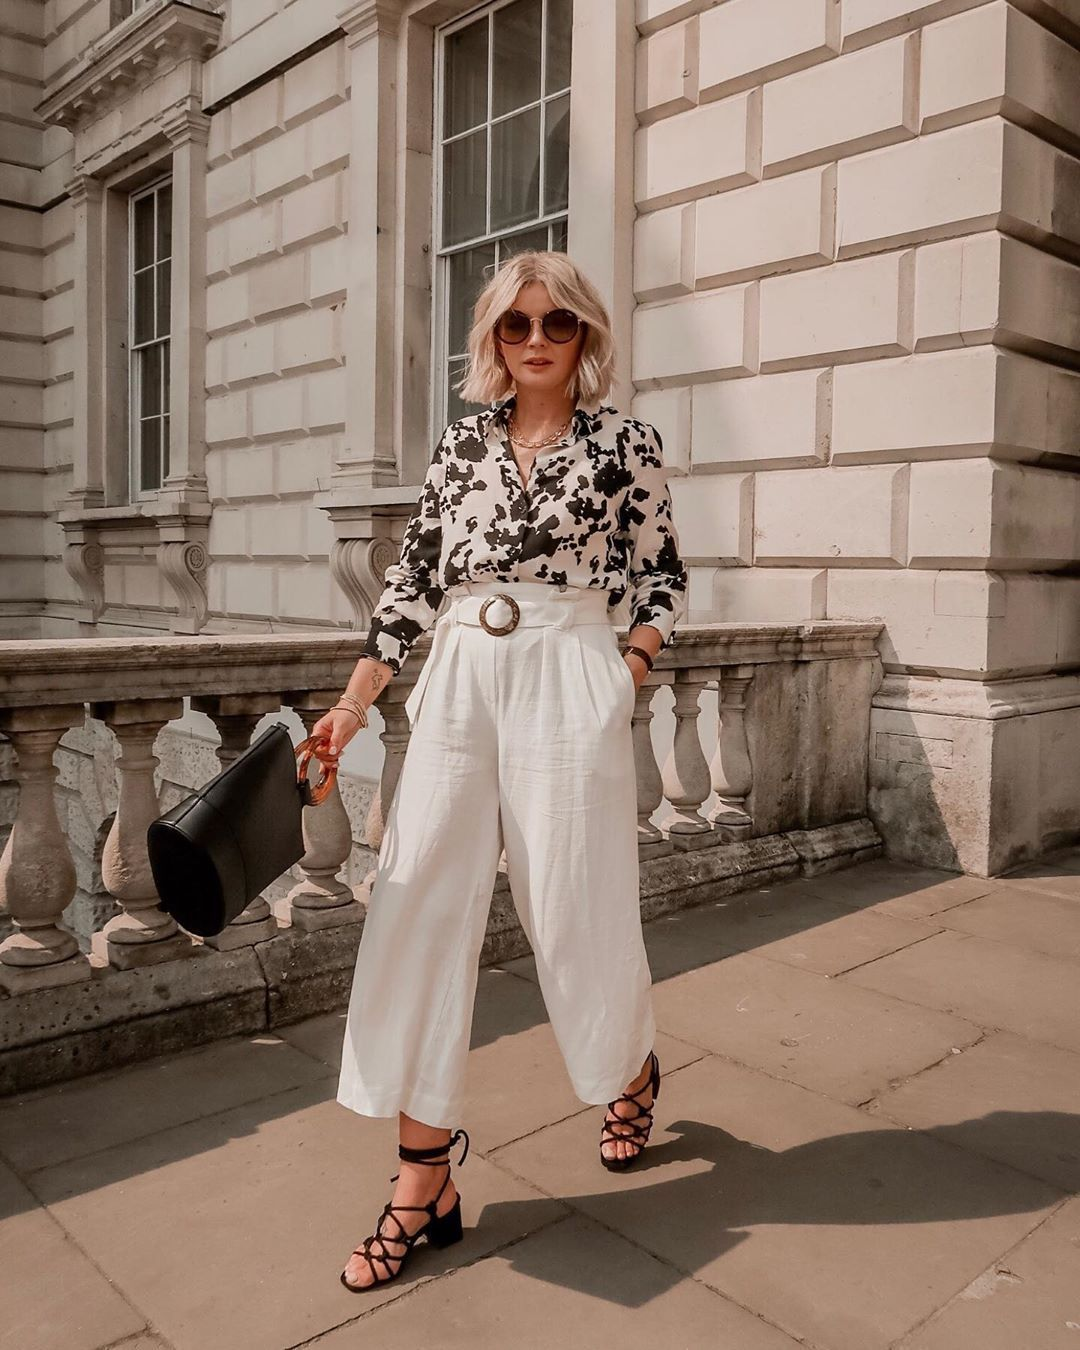 Get the pants for 17£ at newlook.com – Wheretoget